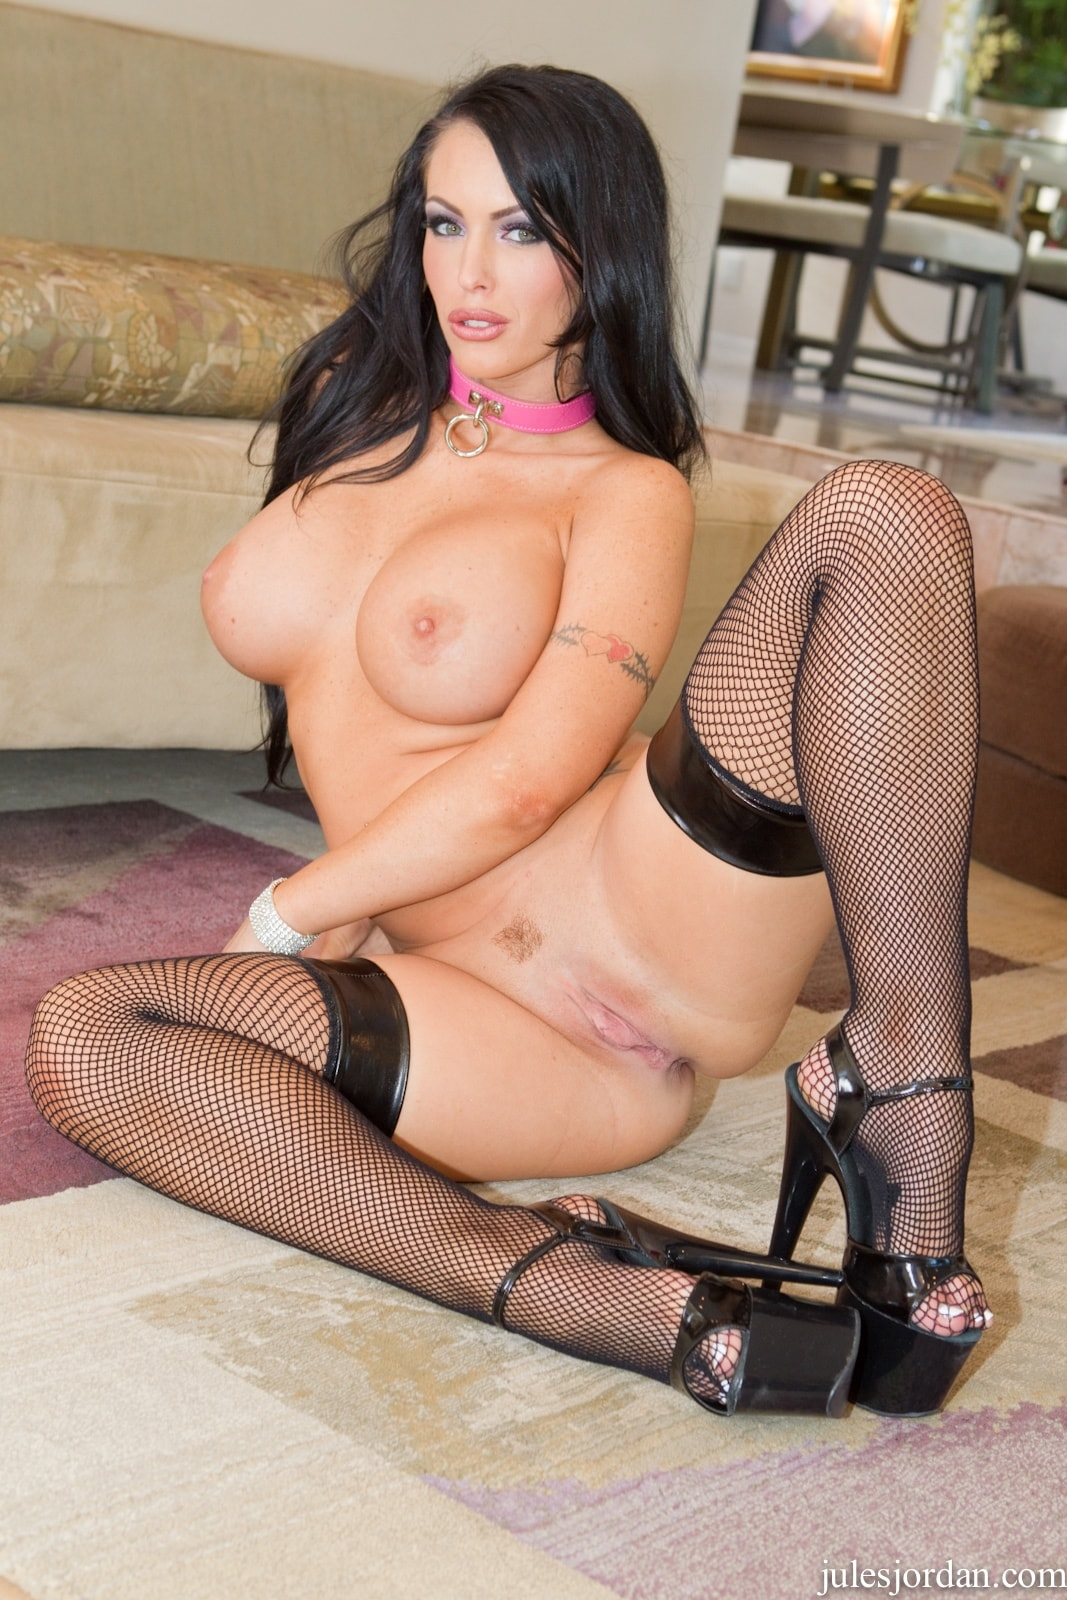 Suggest jenna presley lexington steele